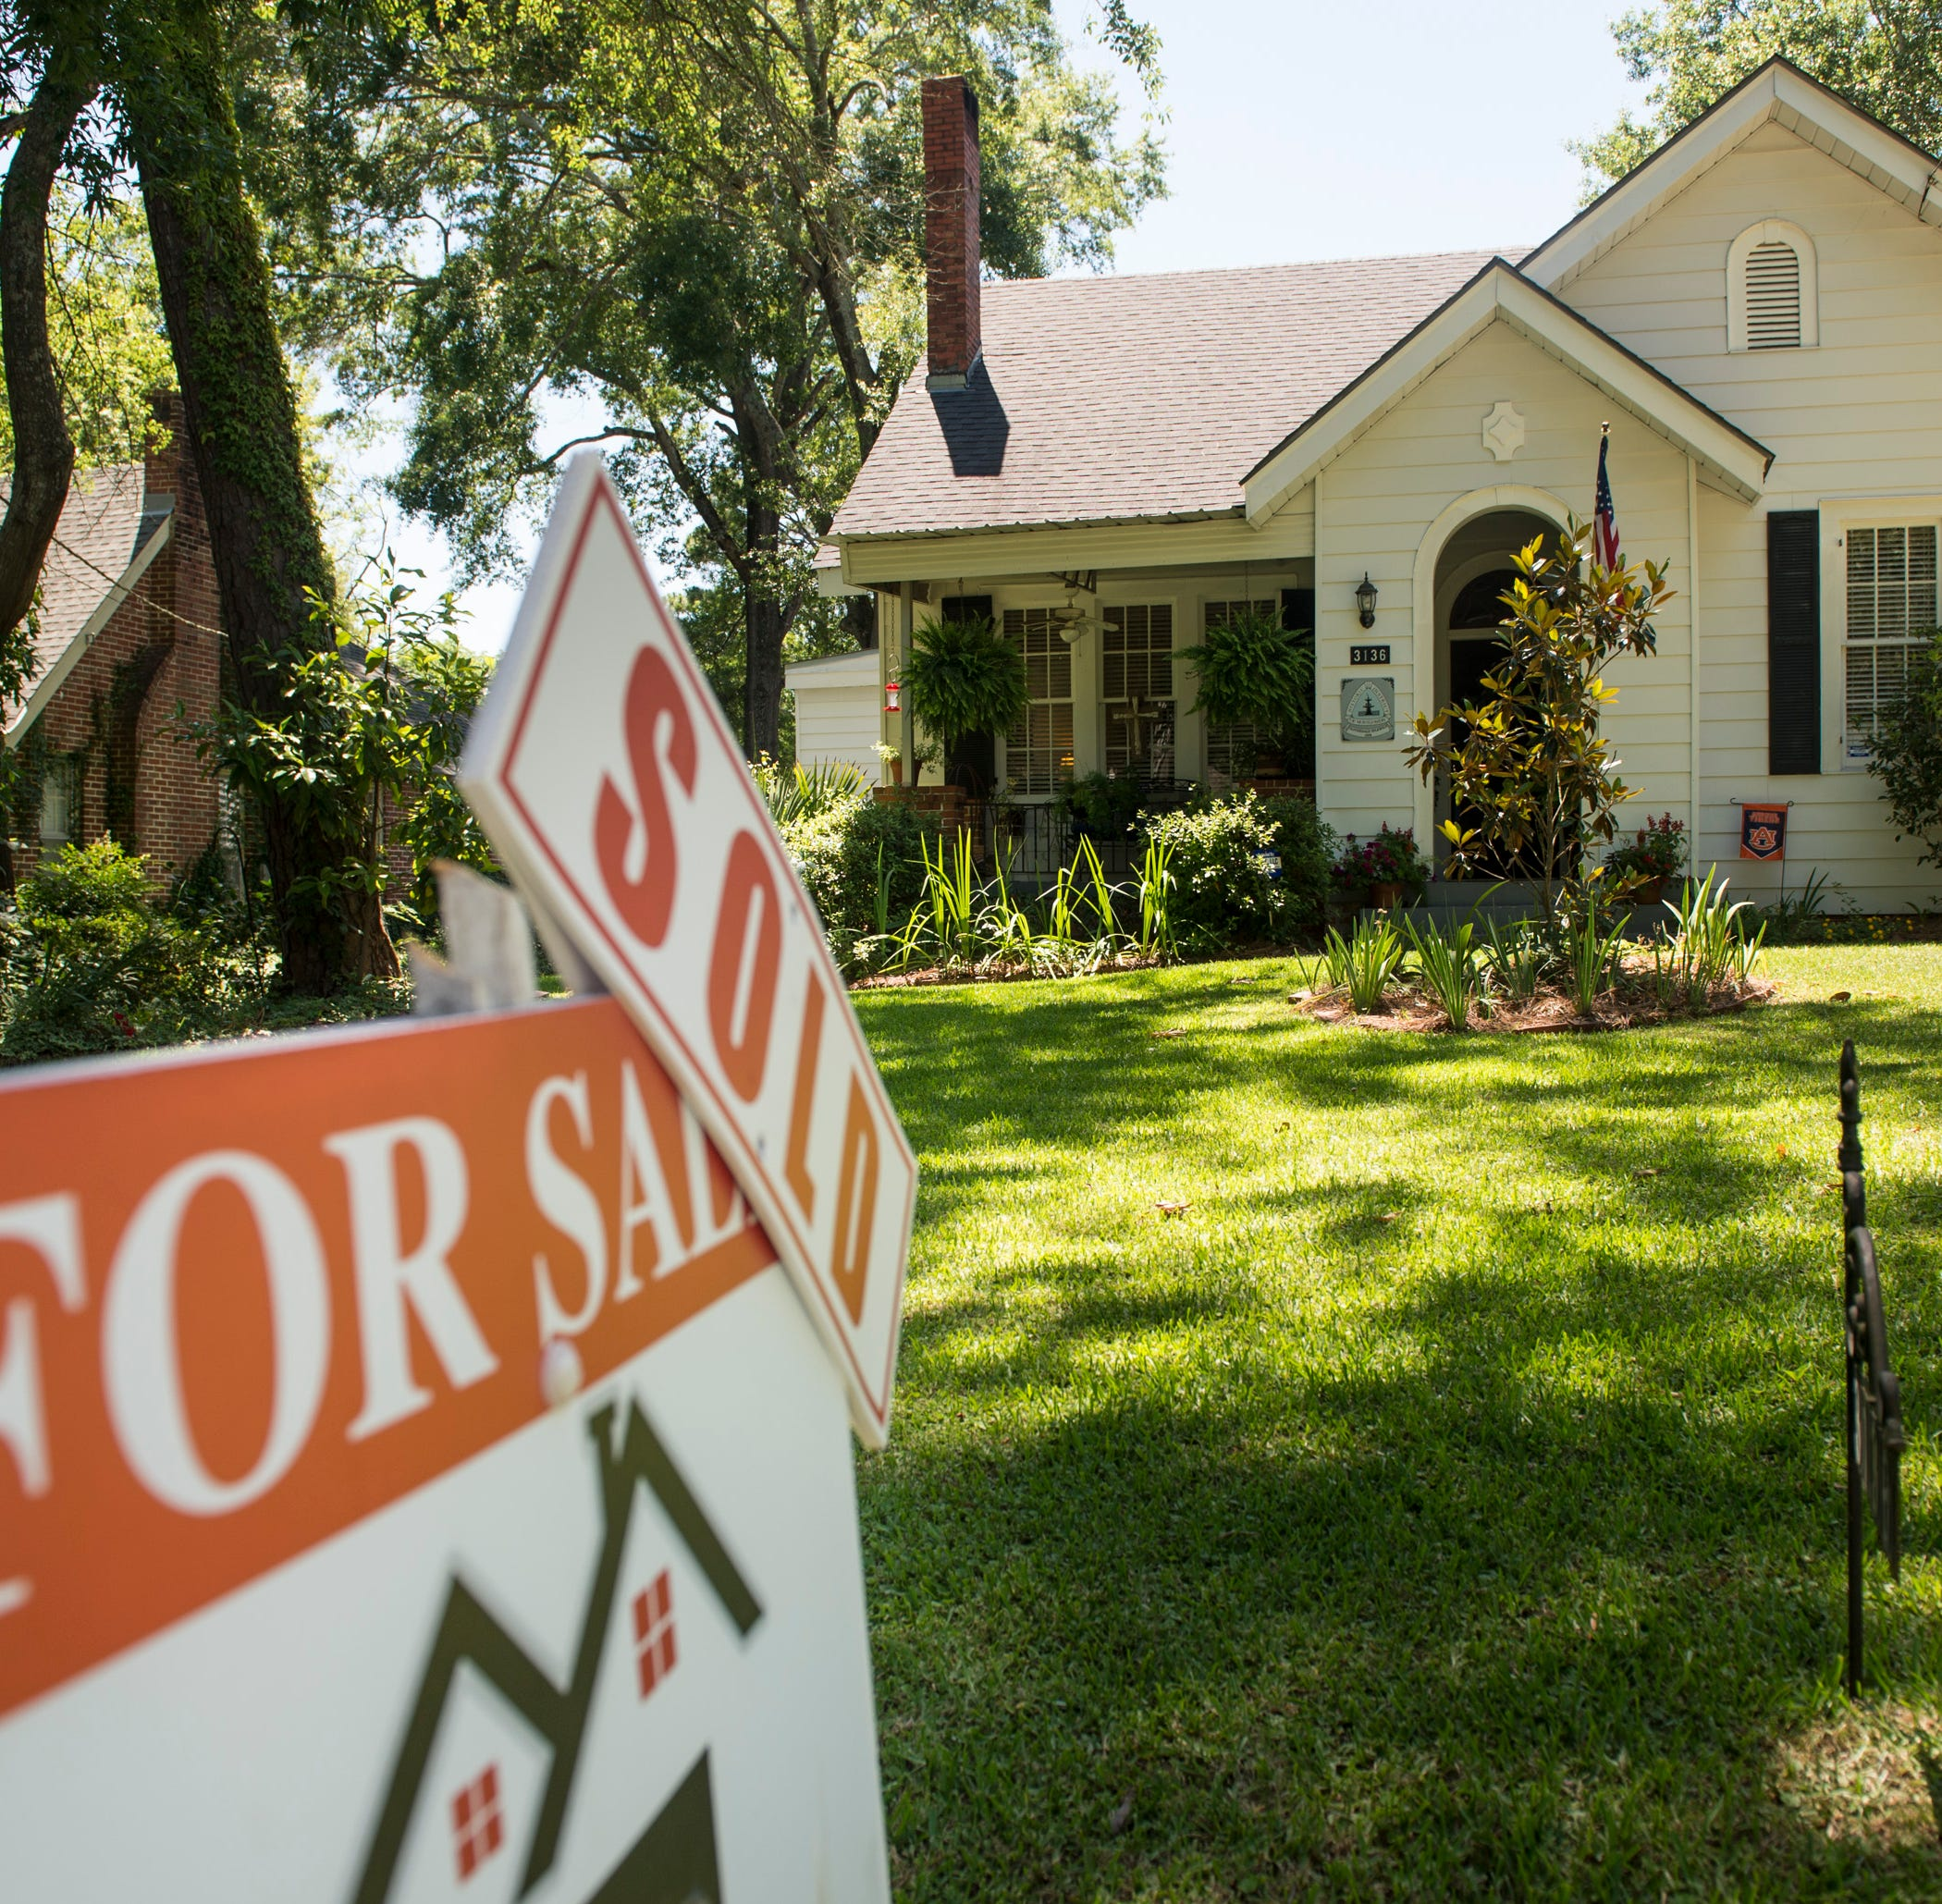 Montgomery is one of the state's hottest housing markets